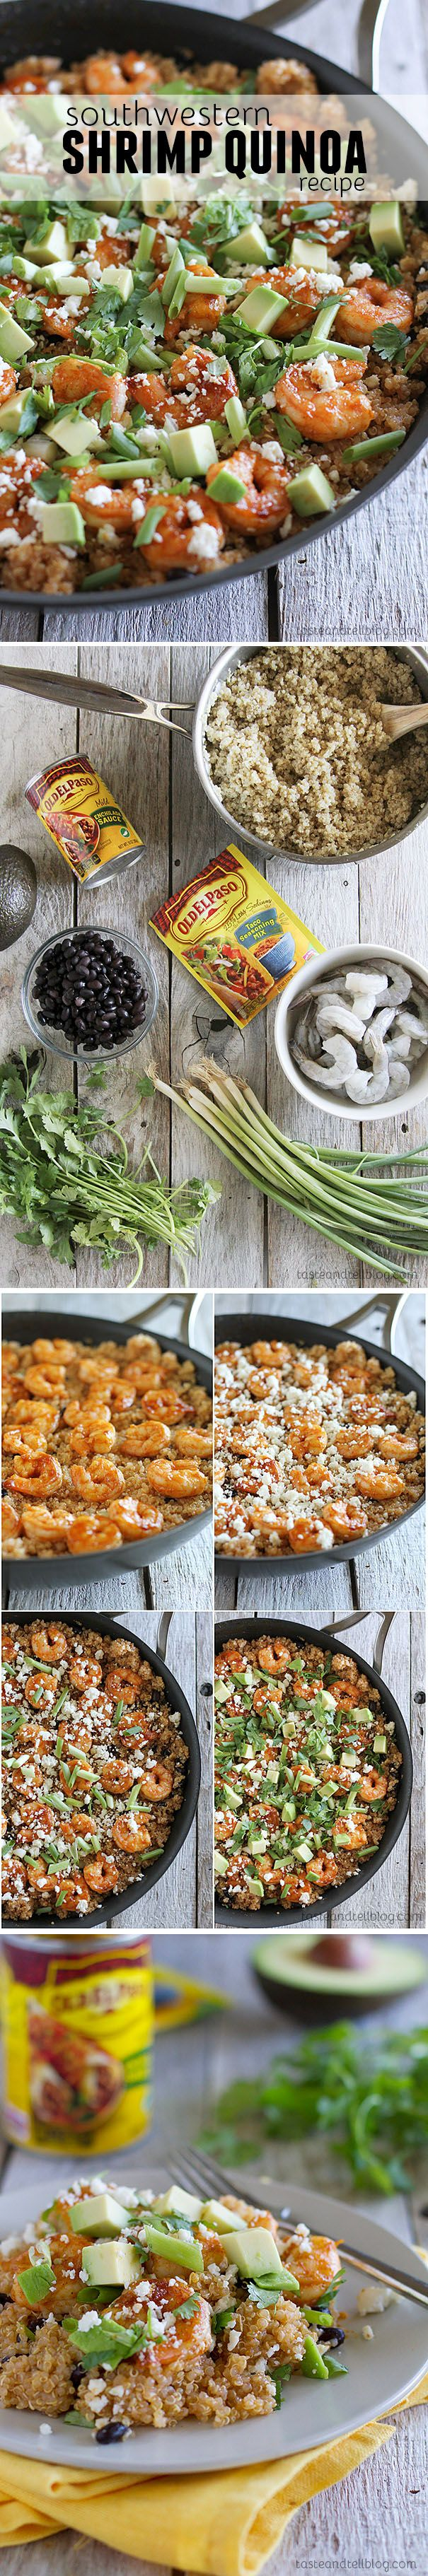 Southwestern Shrimp Quinoa - Healthy doesn't have to be boring. This family friendly Southwestern Shrimp and Quinoa Recipe is filled with nutrition and lots of southwestern spice.